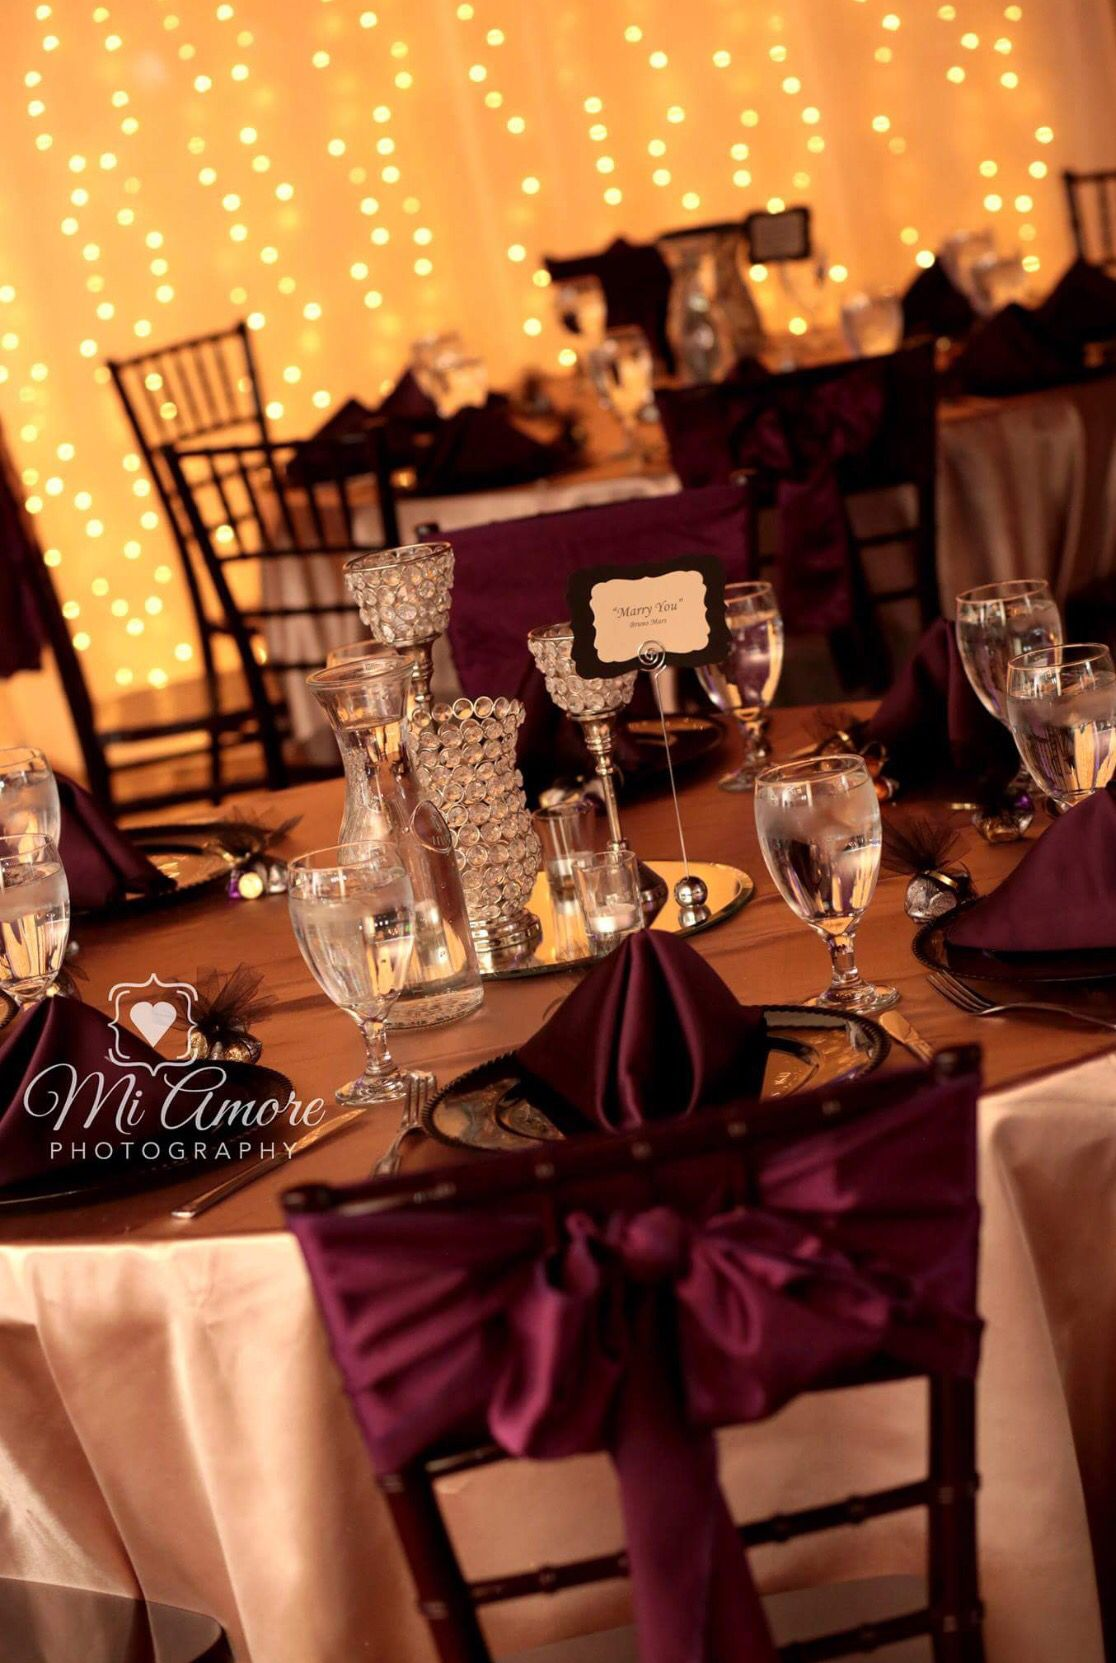 Wedding decor maroon  Burgundy sashes with bling centerpieces on gold linen  Wedding